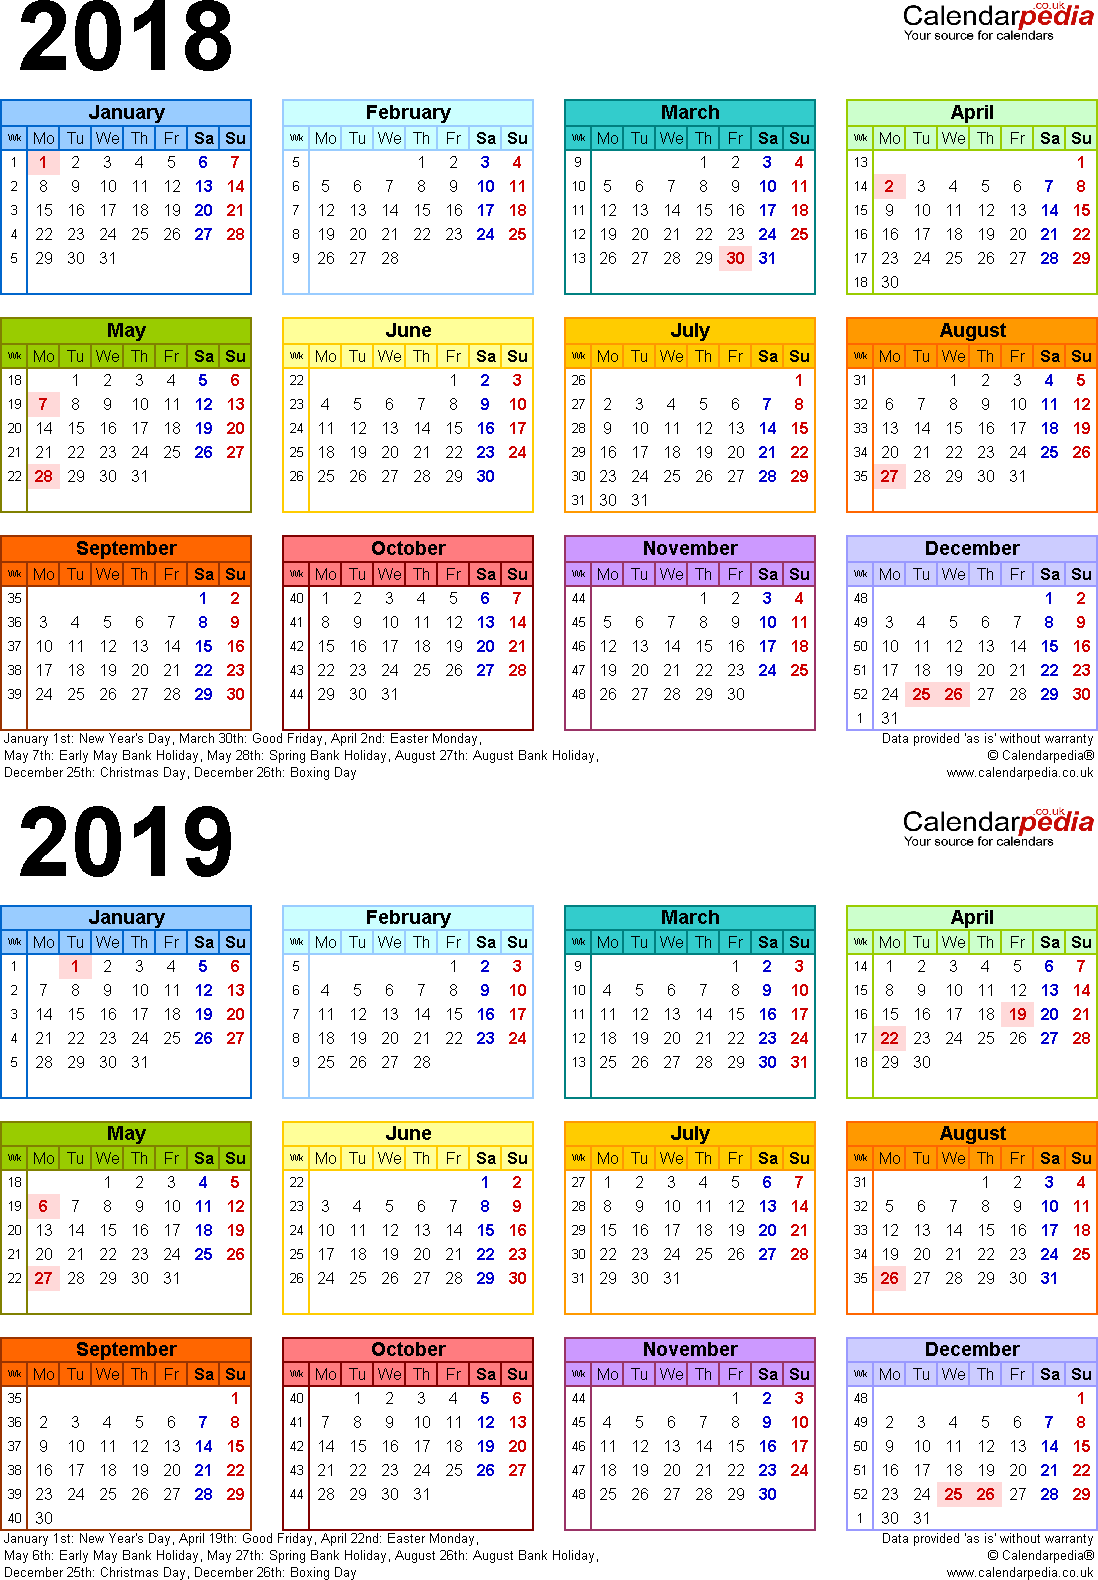 Download Template 4: Excel template for two year calendar 2018/2019 in colour (portrait orientation, 1 page, A4)